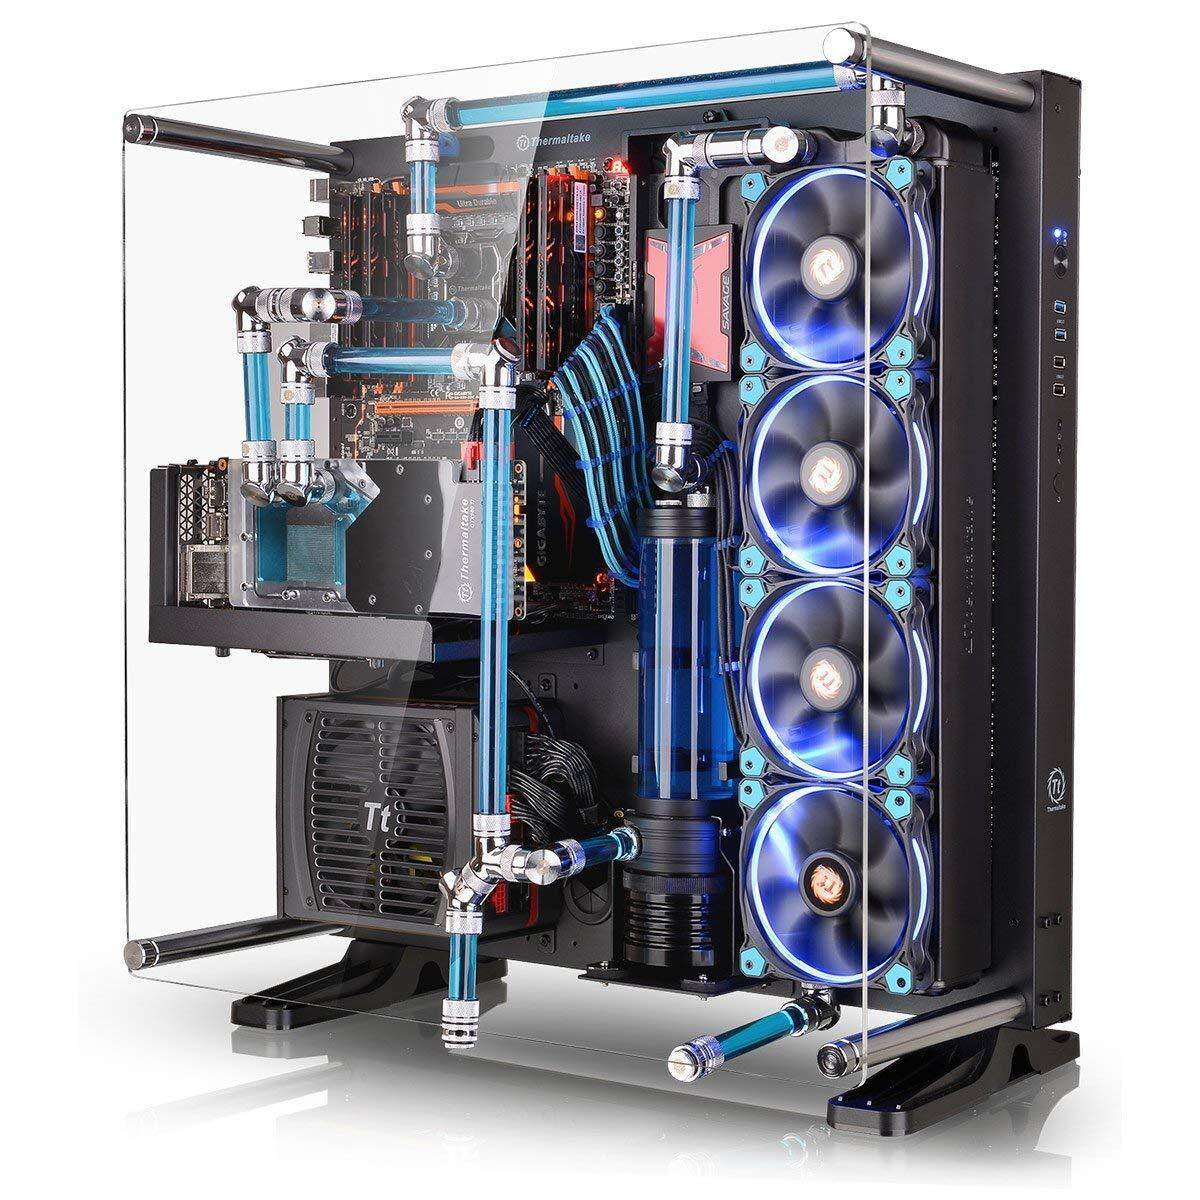 Thermaltake Core P5 Black Edition ATX Open Frame Panoramic Viewing Gaming PC Computer Case (1x PCI-E Riser Included) Malaysia